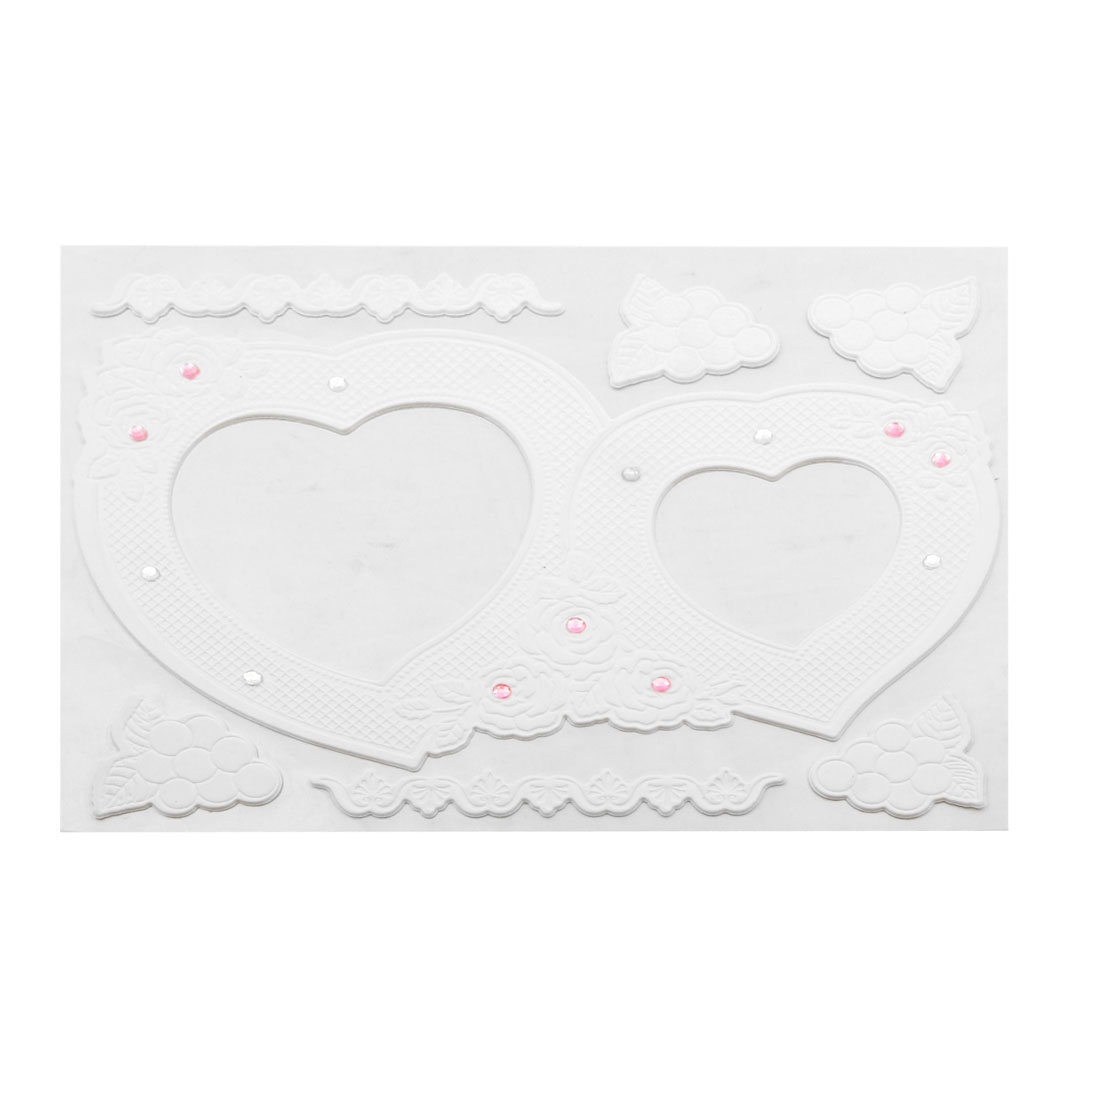 Textured Design Dual Heart Shaped Picture Frame Plastic Sticker White